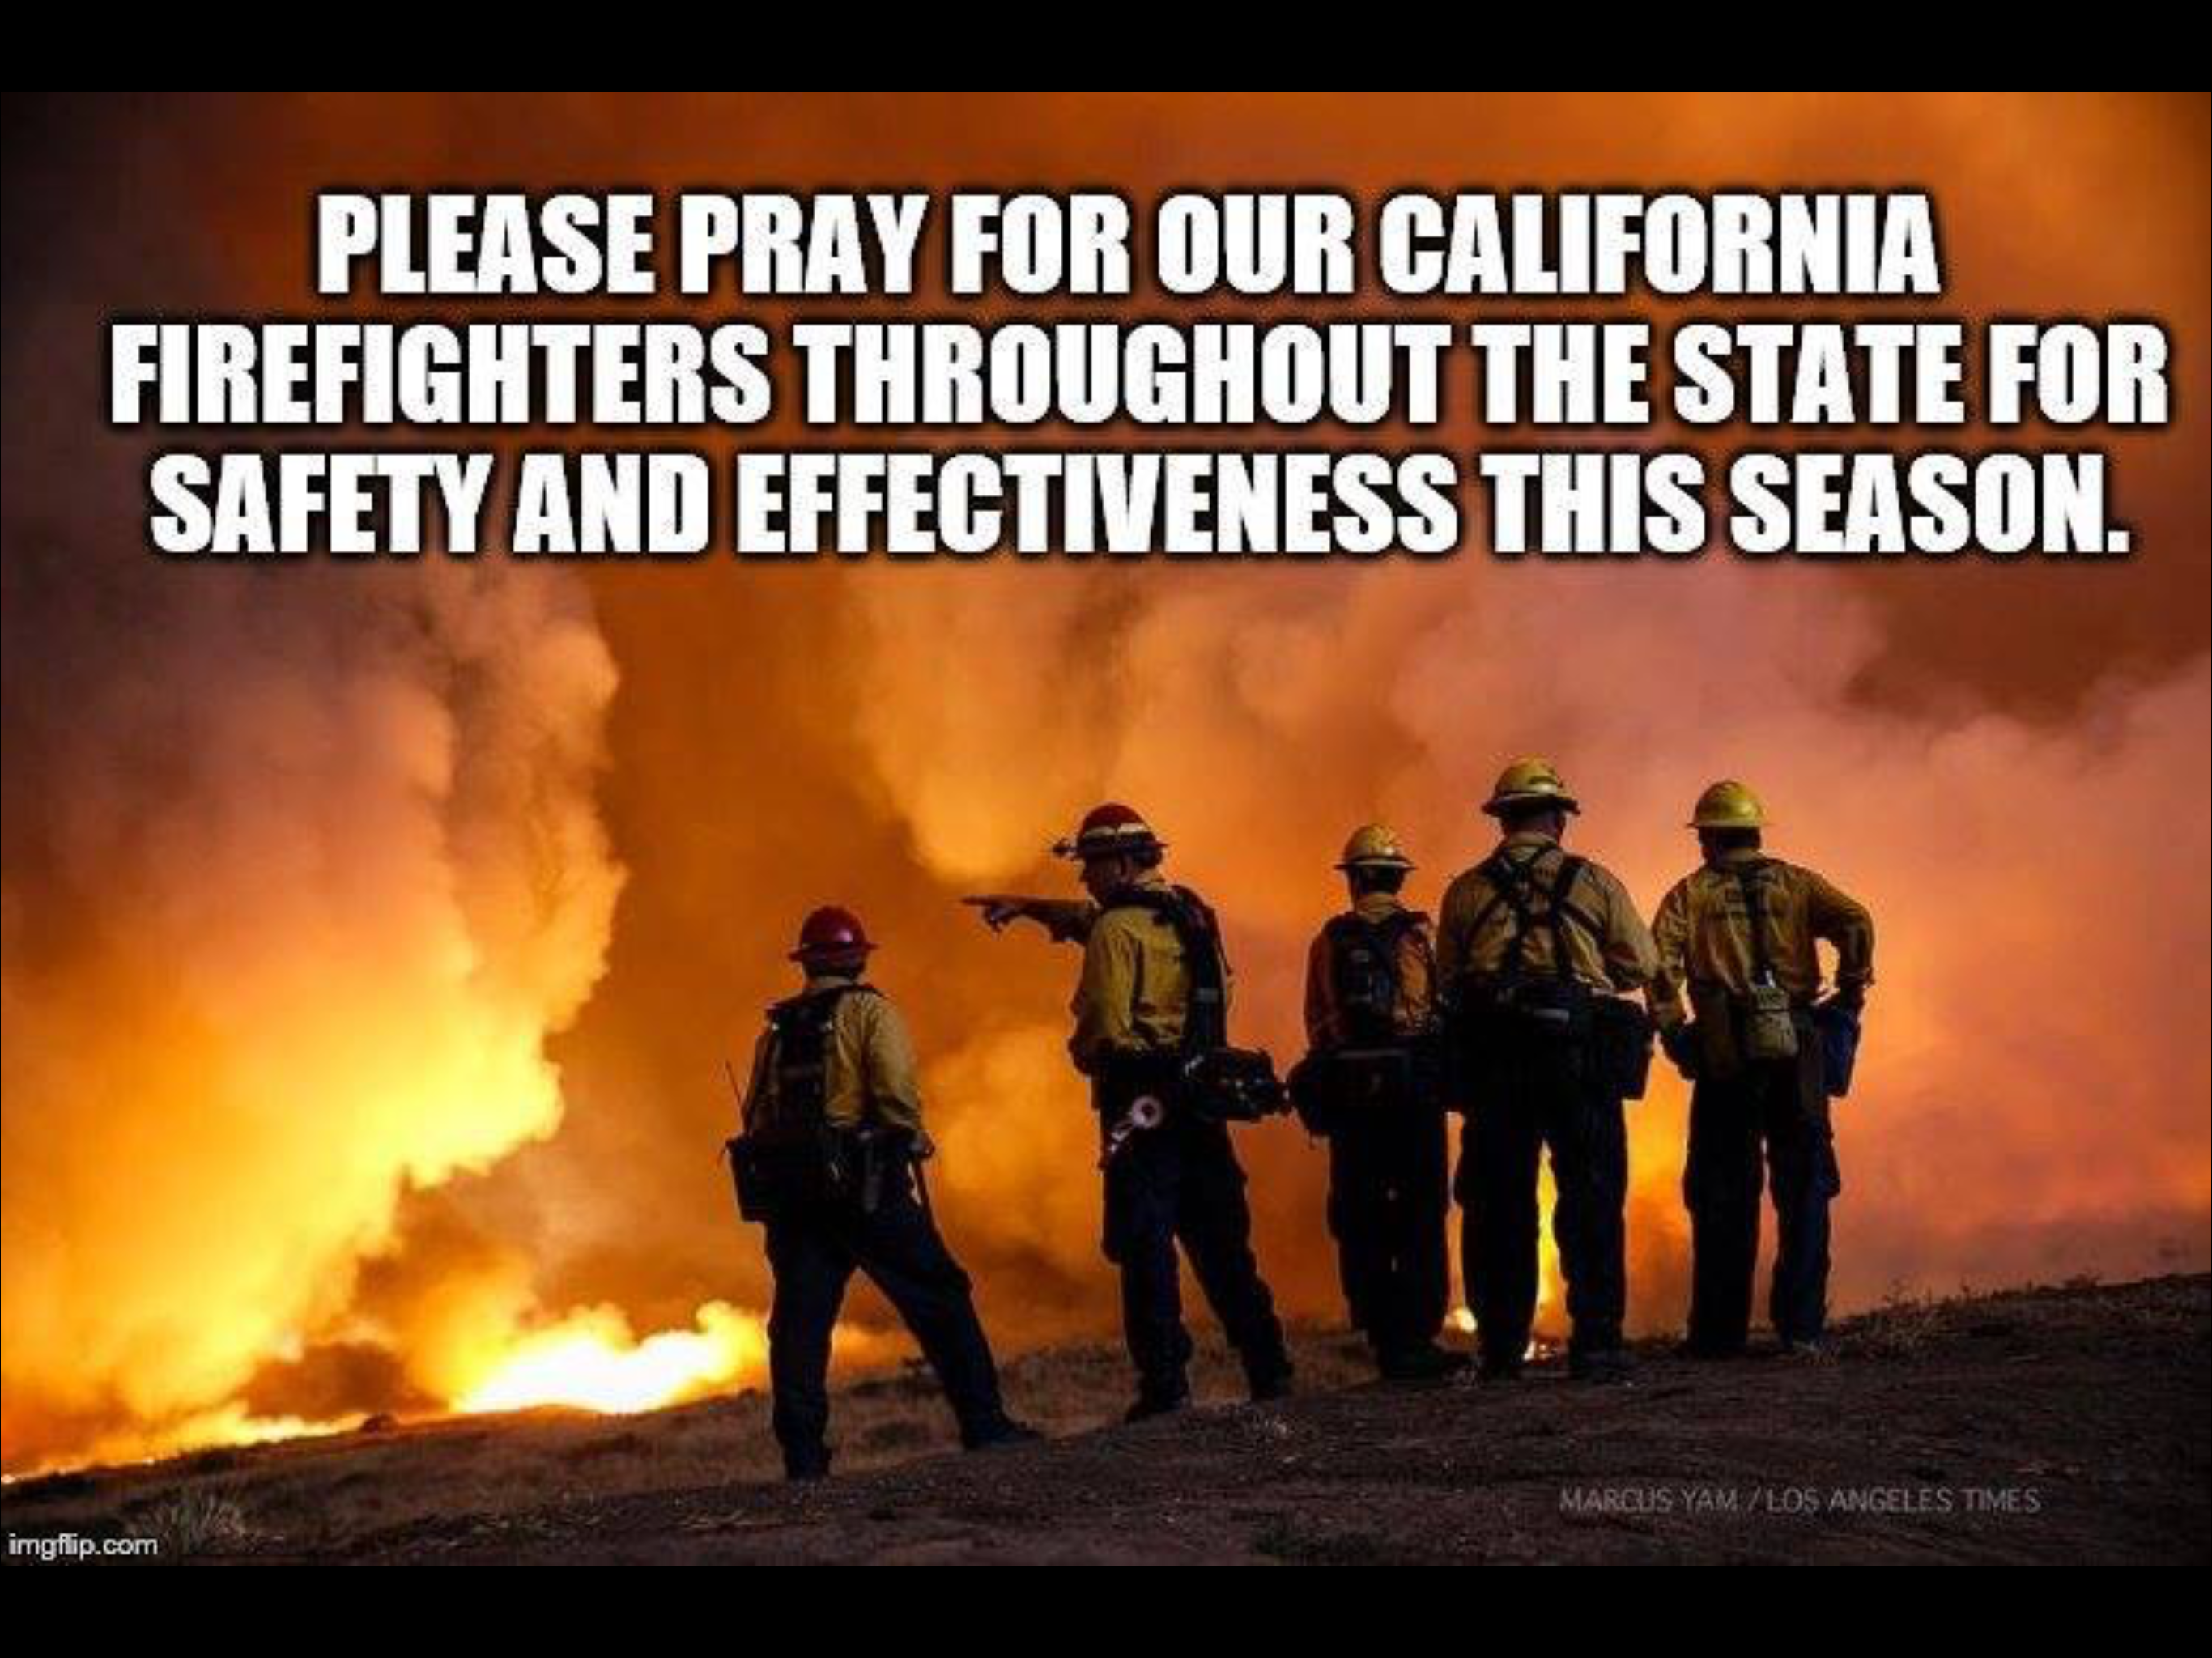 Pin by Judy Jaeger on FIREFIGHTERS Firefighter, Movie